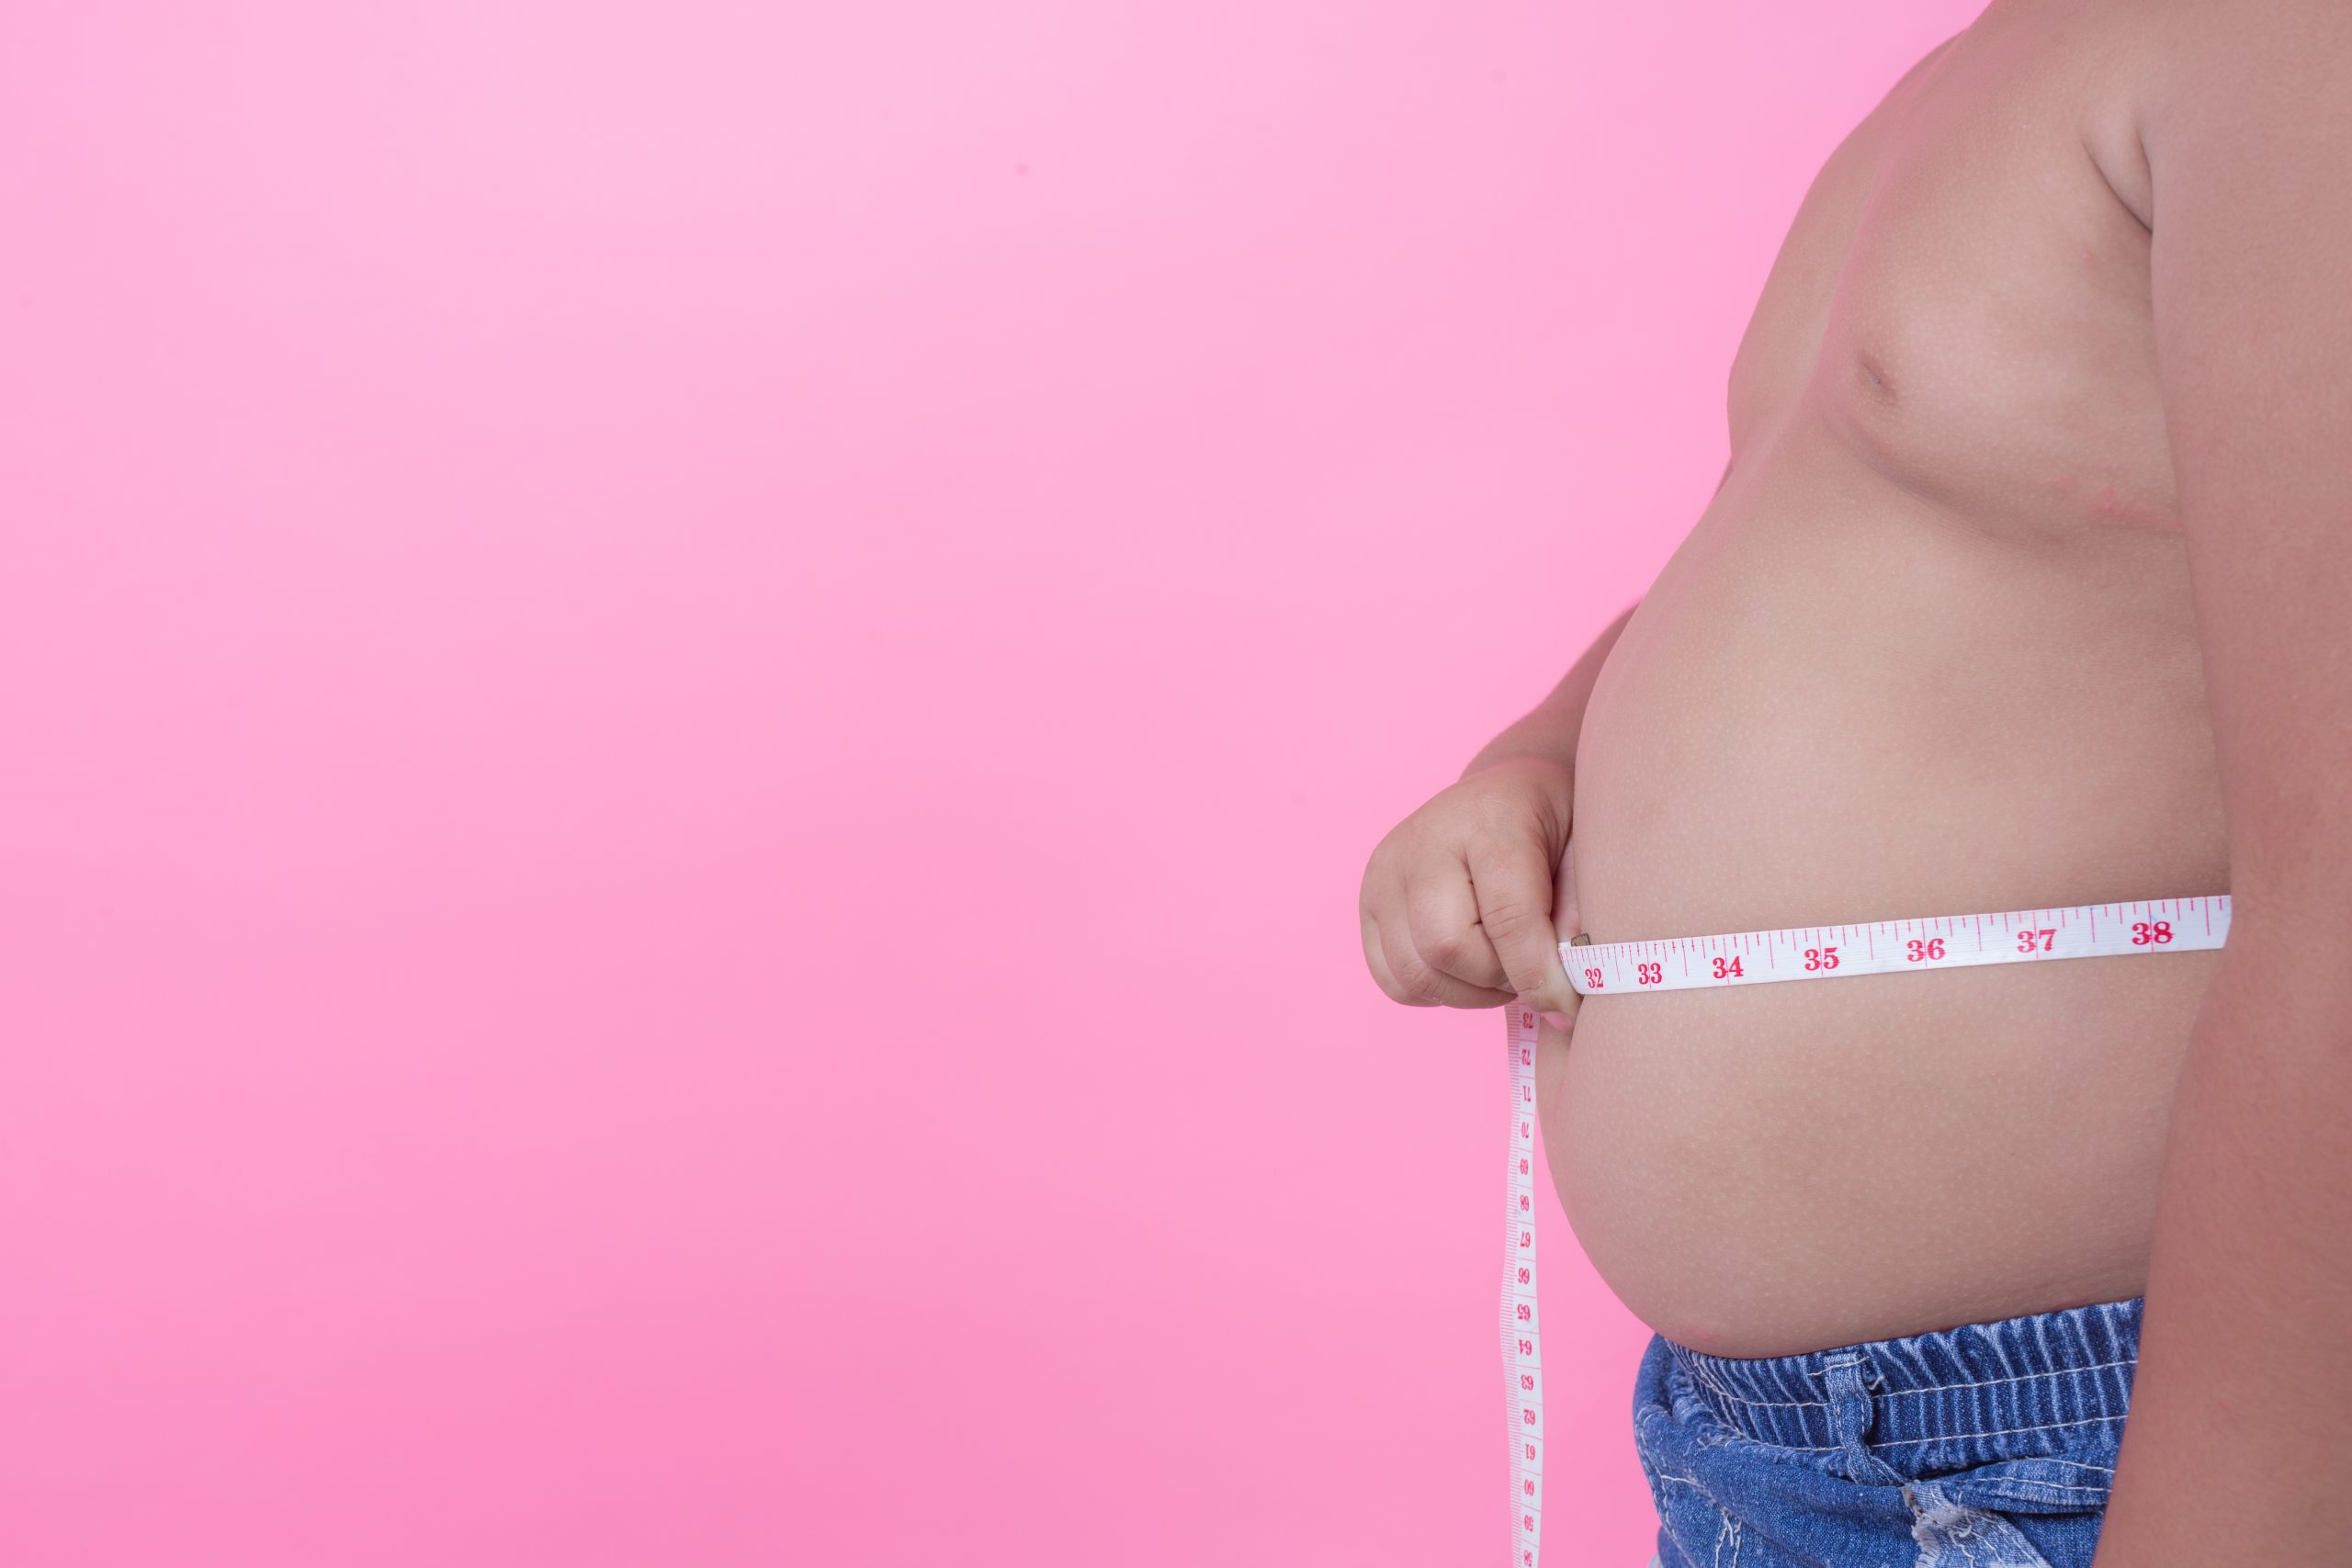 obese boy who is overweight pink background scaled